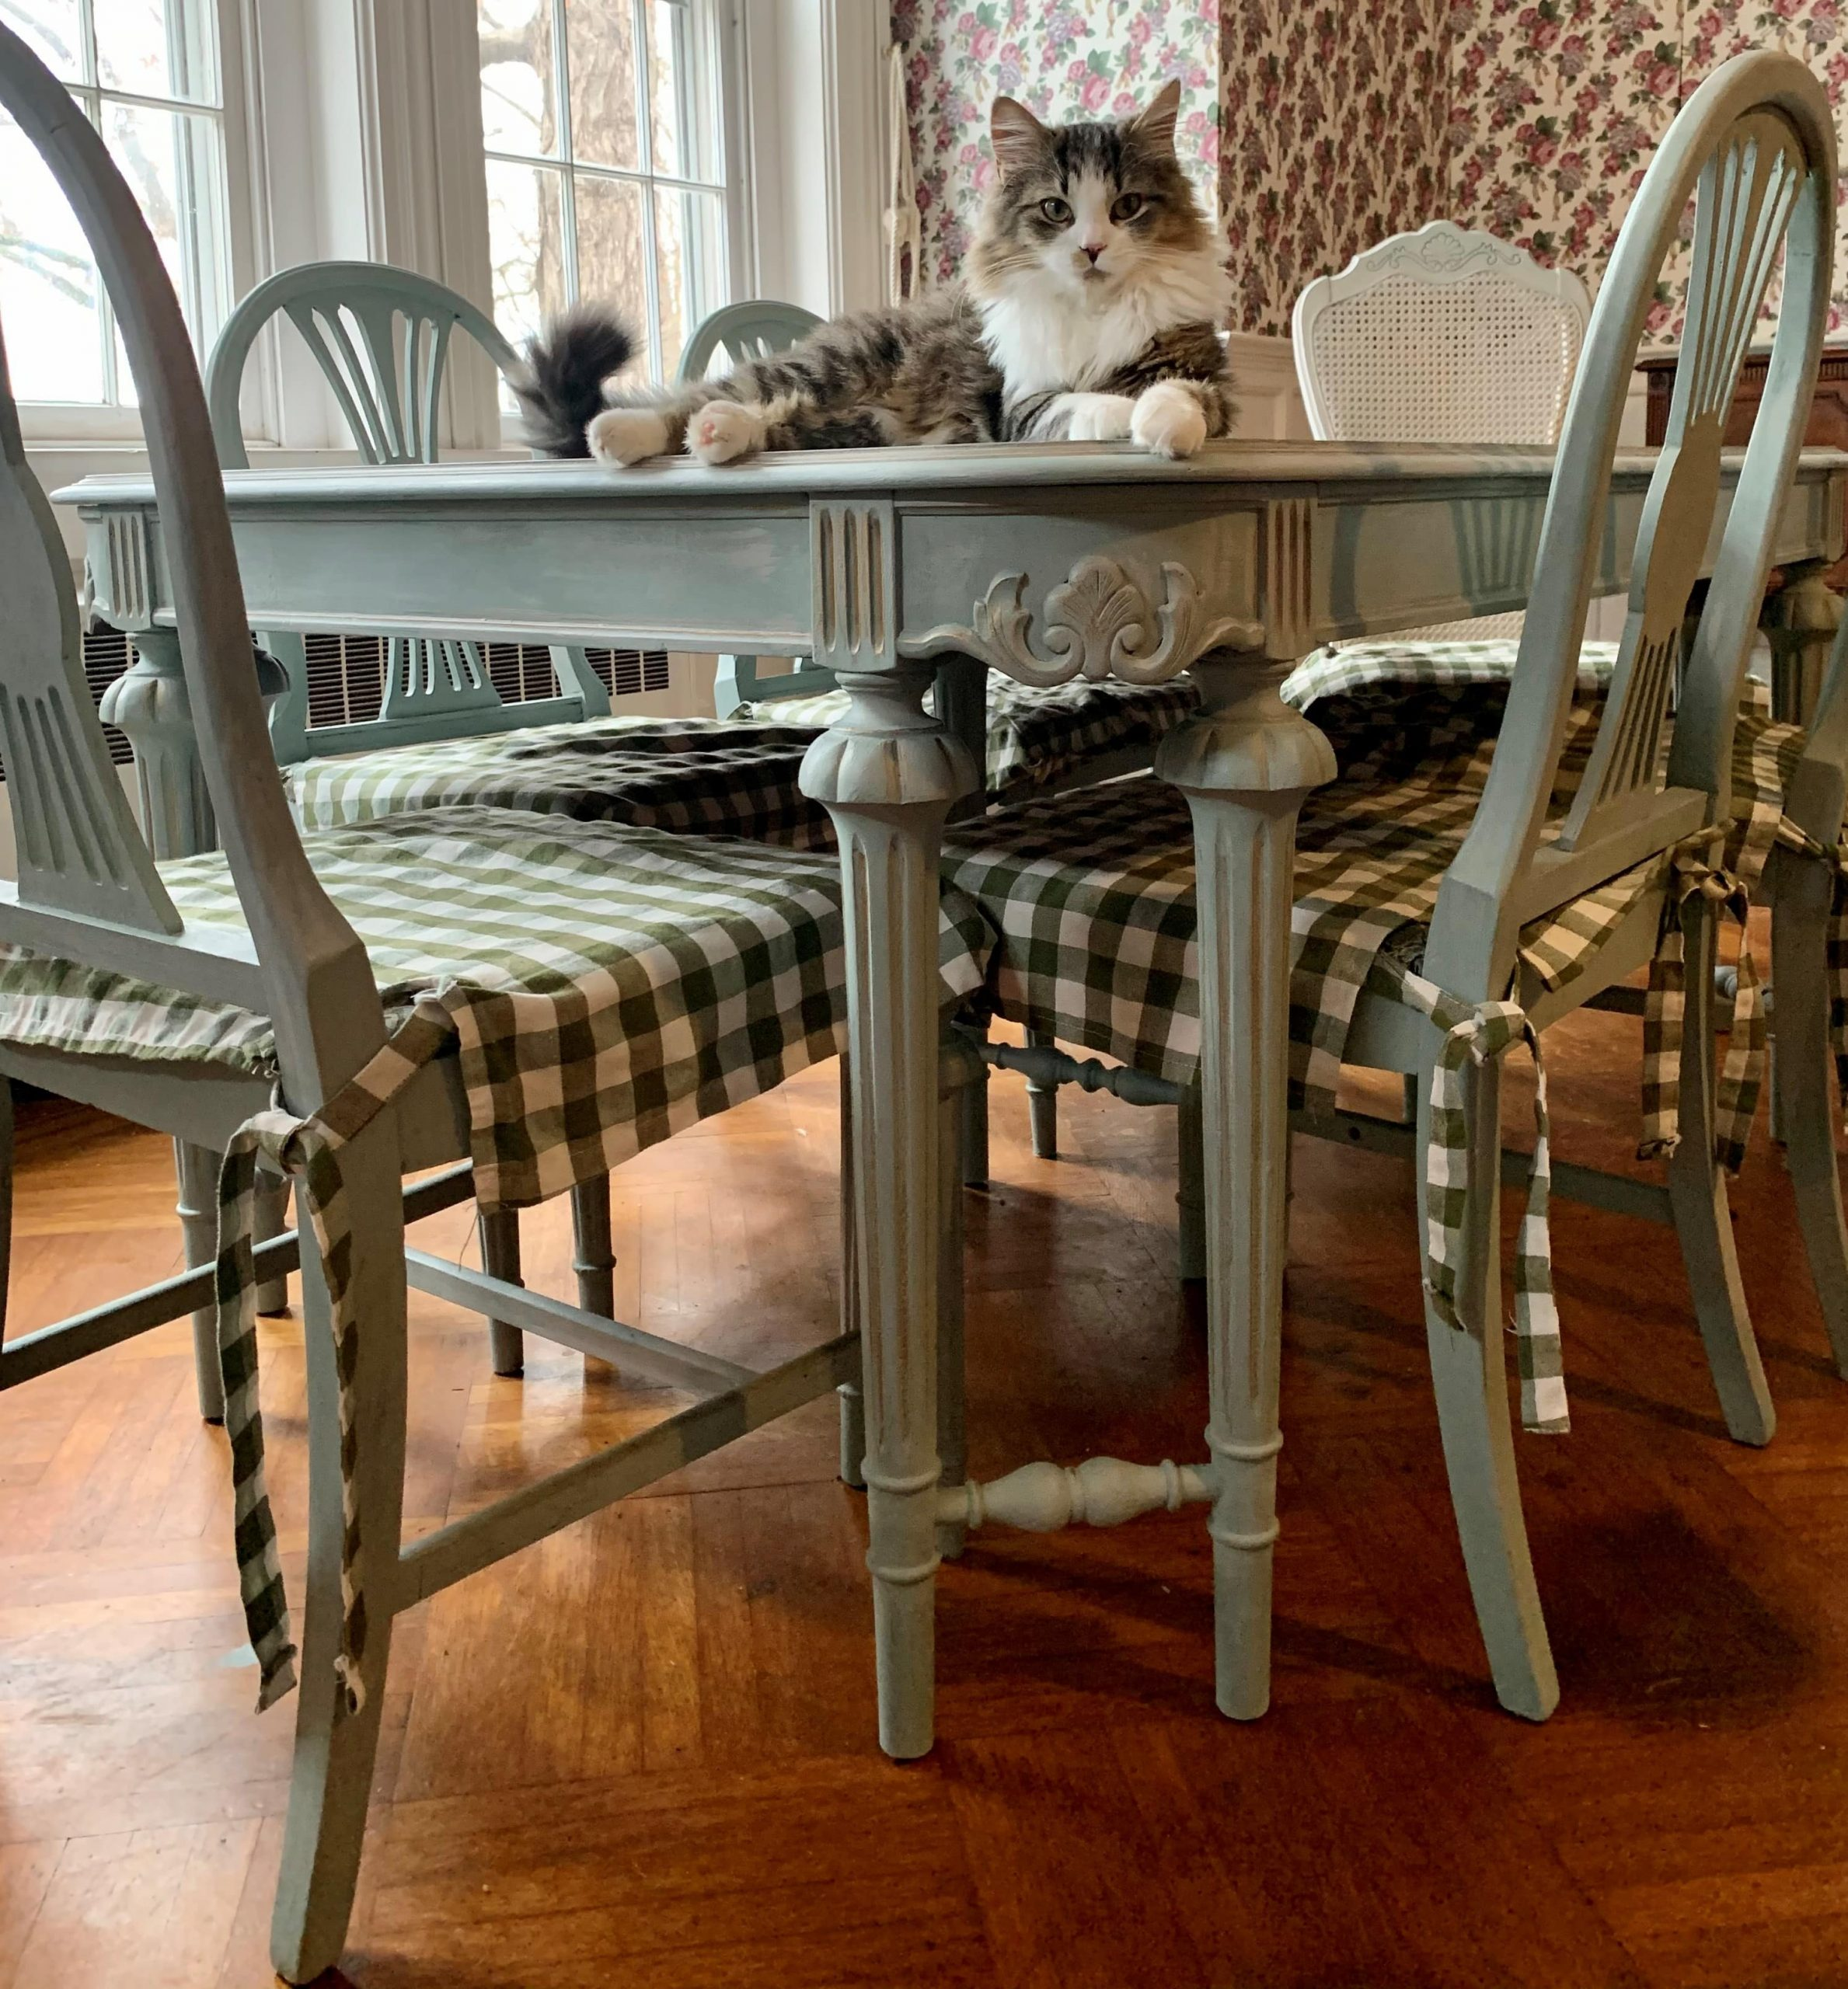 grey and white kitten sitting on blue green neoclassical table